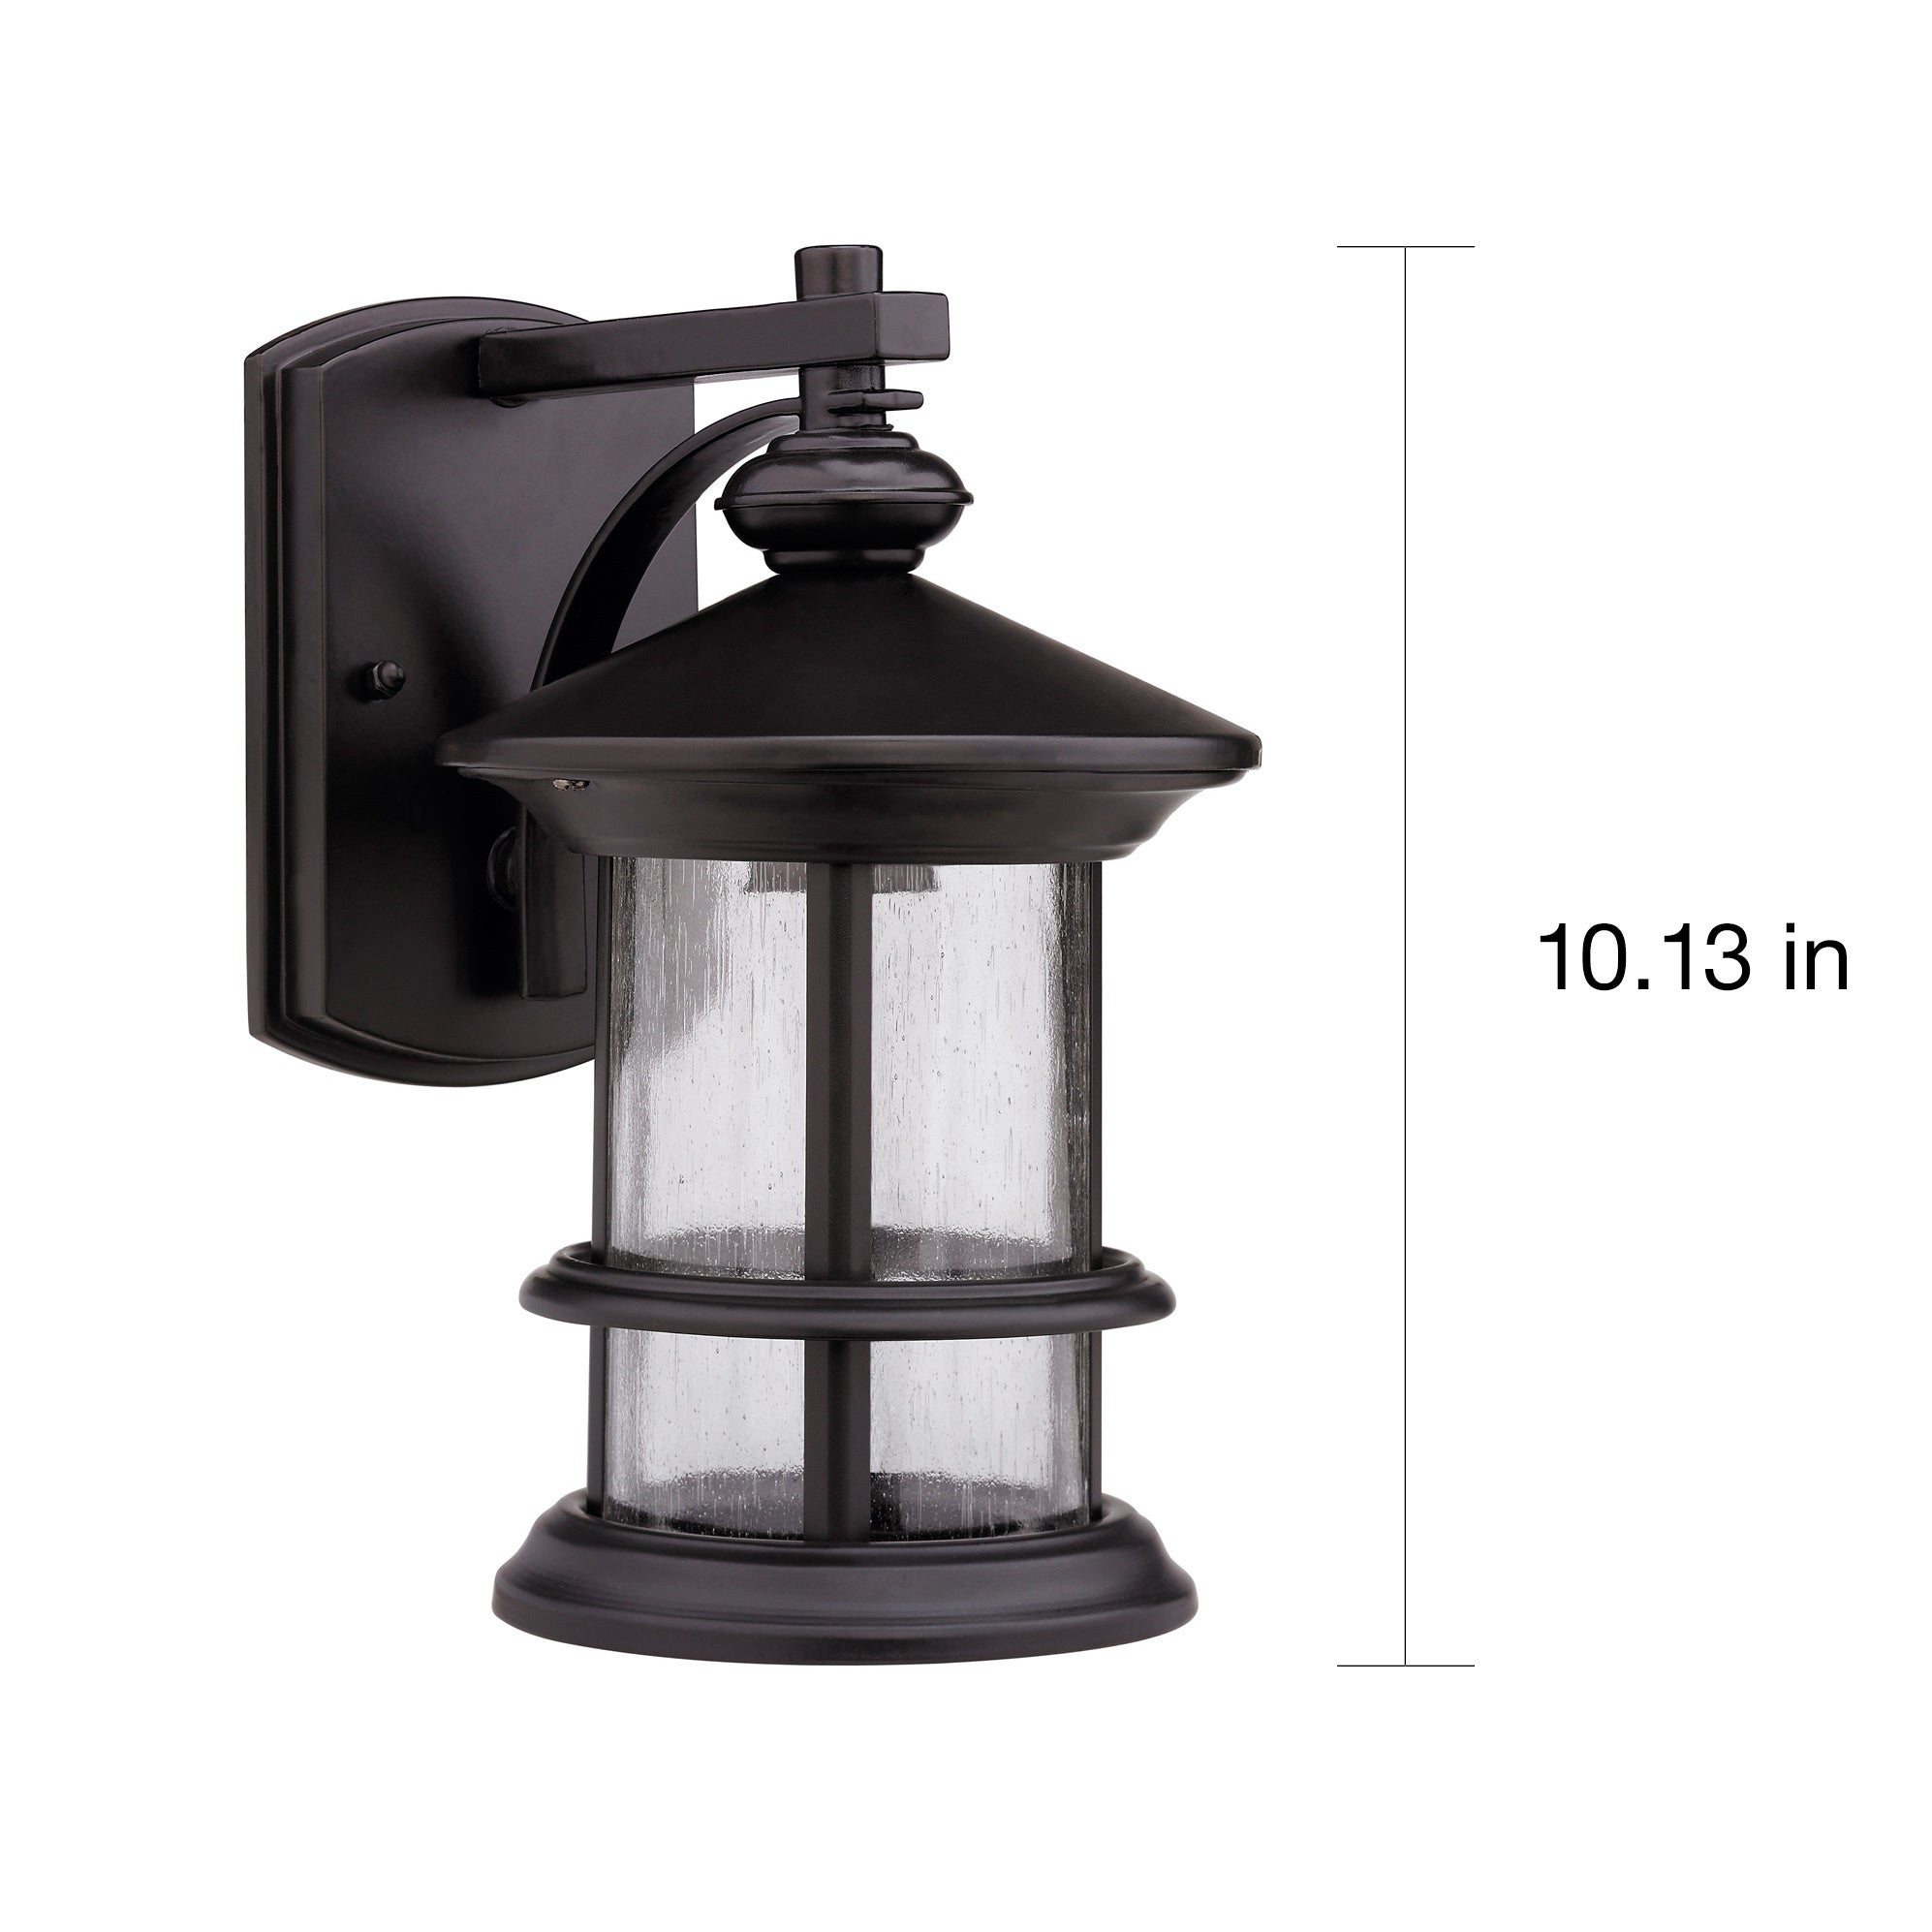 Rubbed dark bronze 1 light outdoor wall mounted light fixture free rubbed dark bronze 1 light outdoor wall mounted light fixture free shipping on orders over 45 overstock 14485270 mozeypictures Gallery